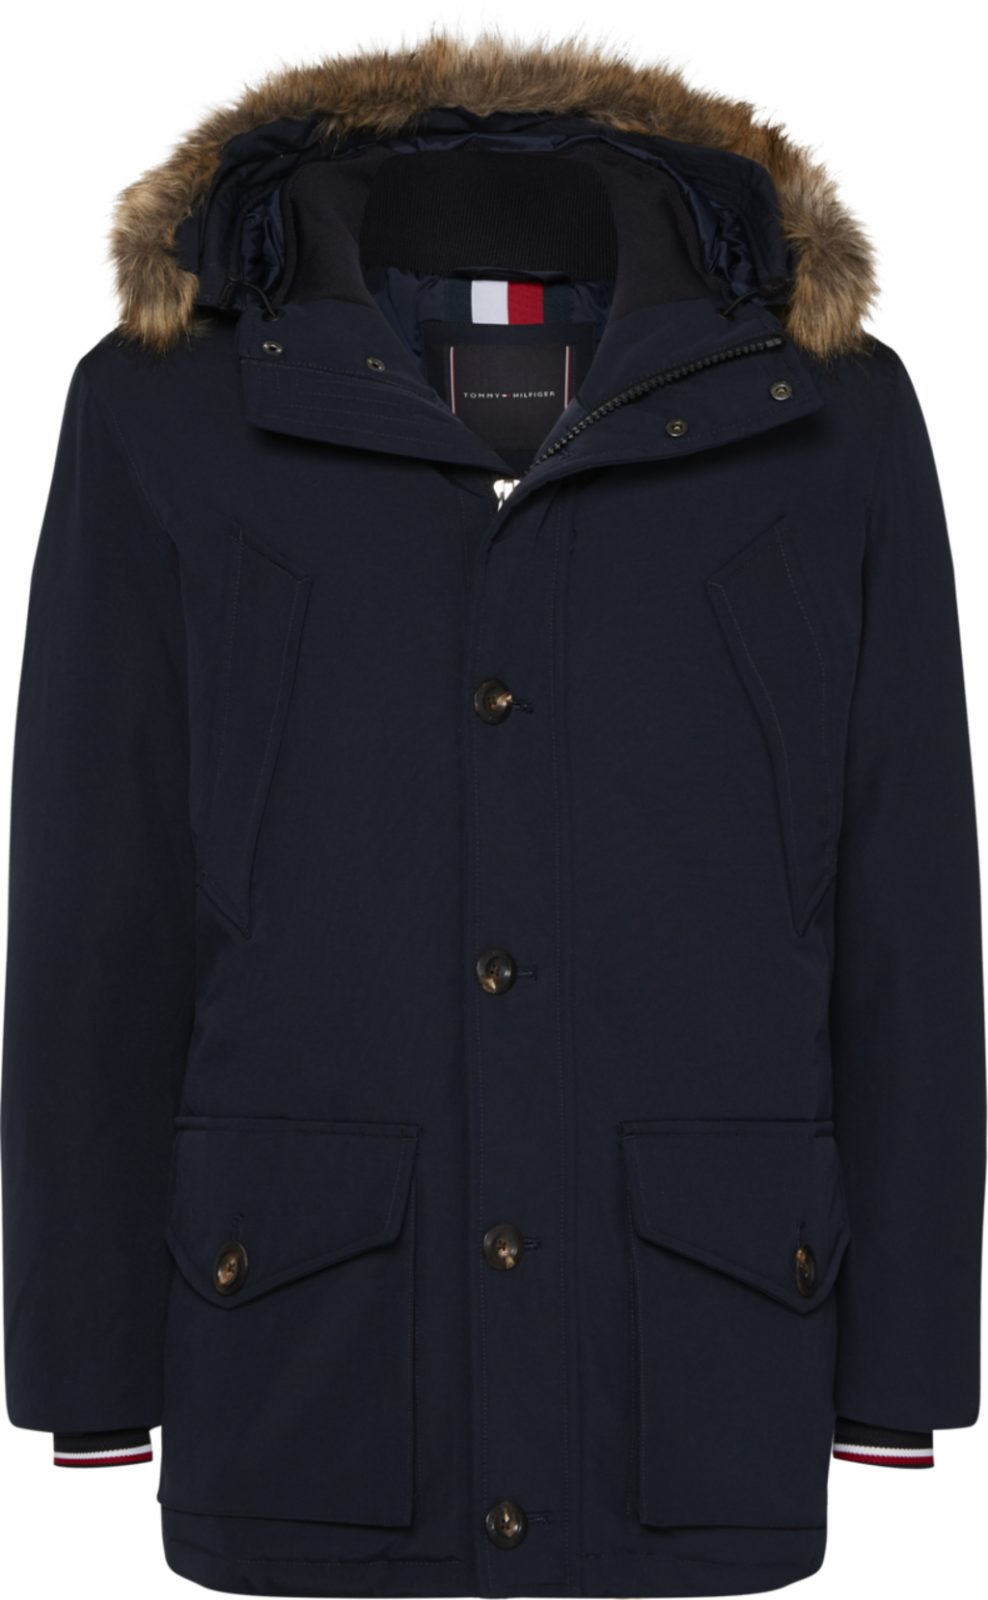 New Tommy Hilfiger women's and men's coats & jackets